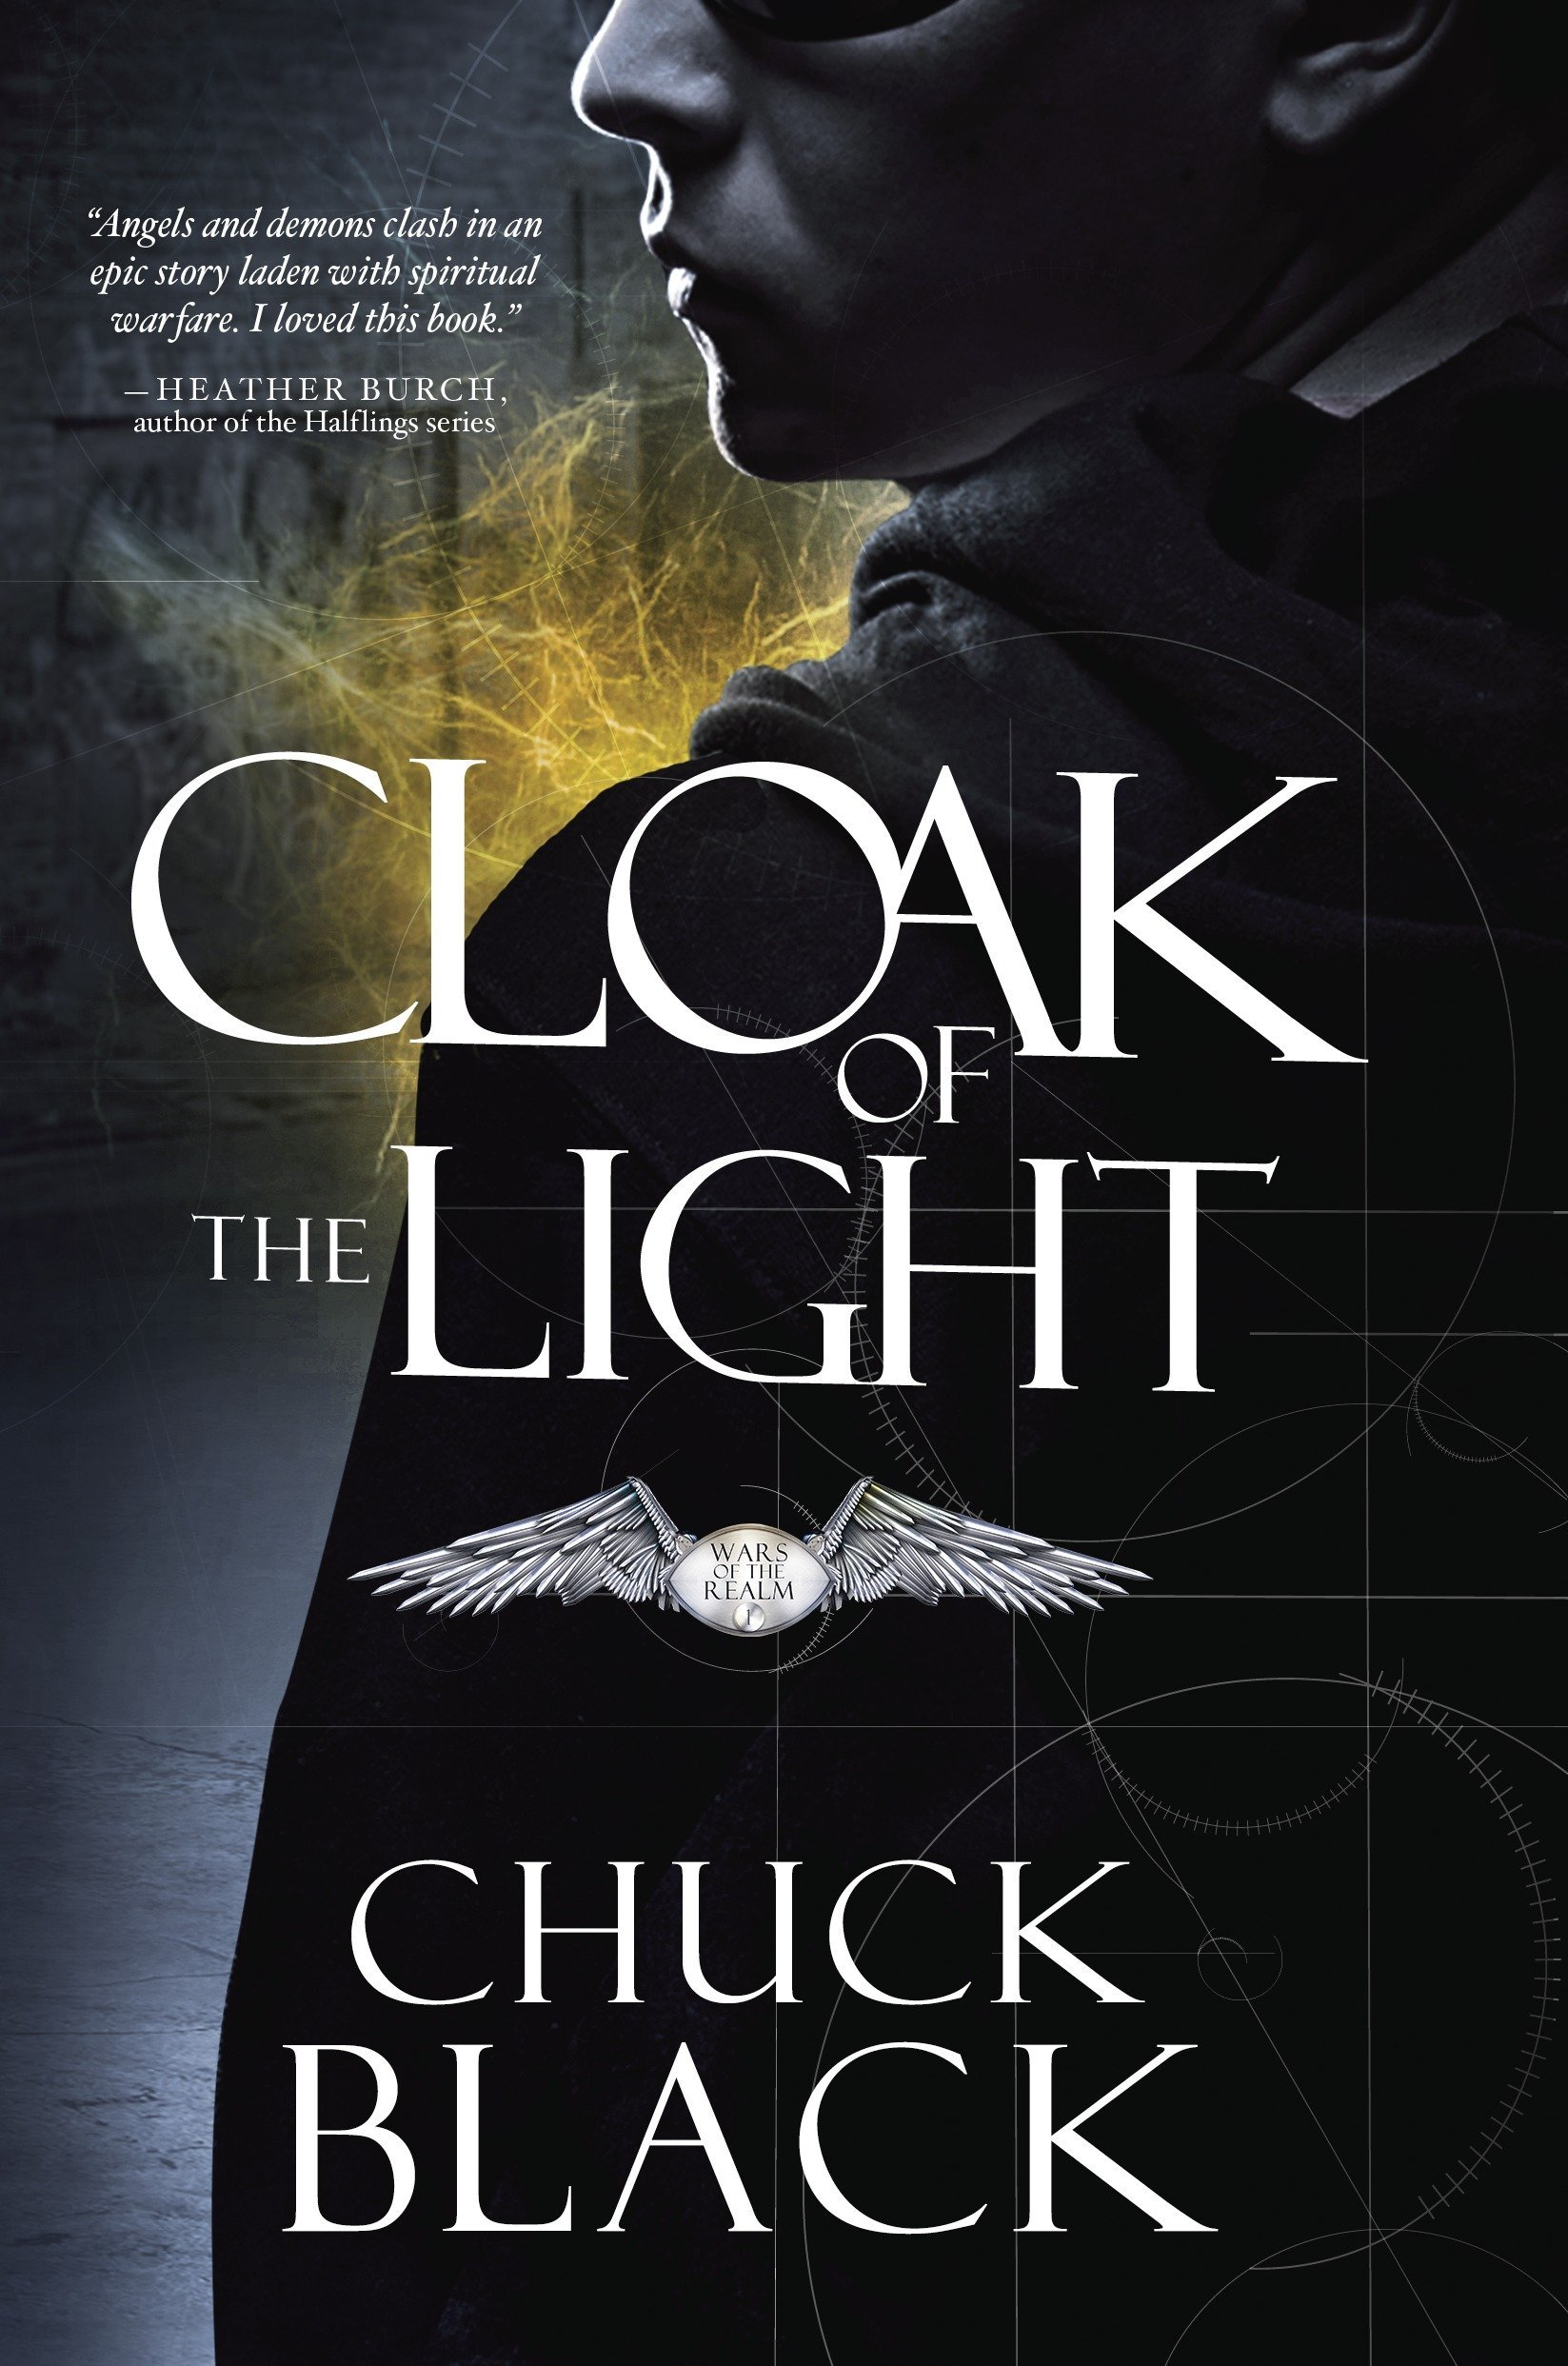 Download Cloak of the Light: Wars of the Realm, Book 1 PDF